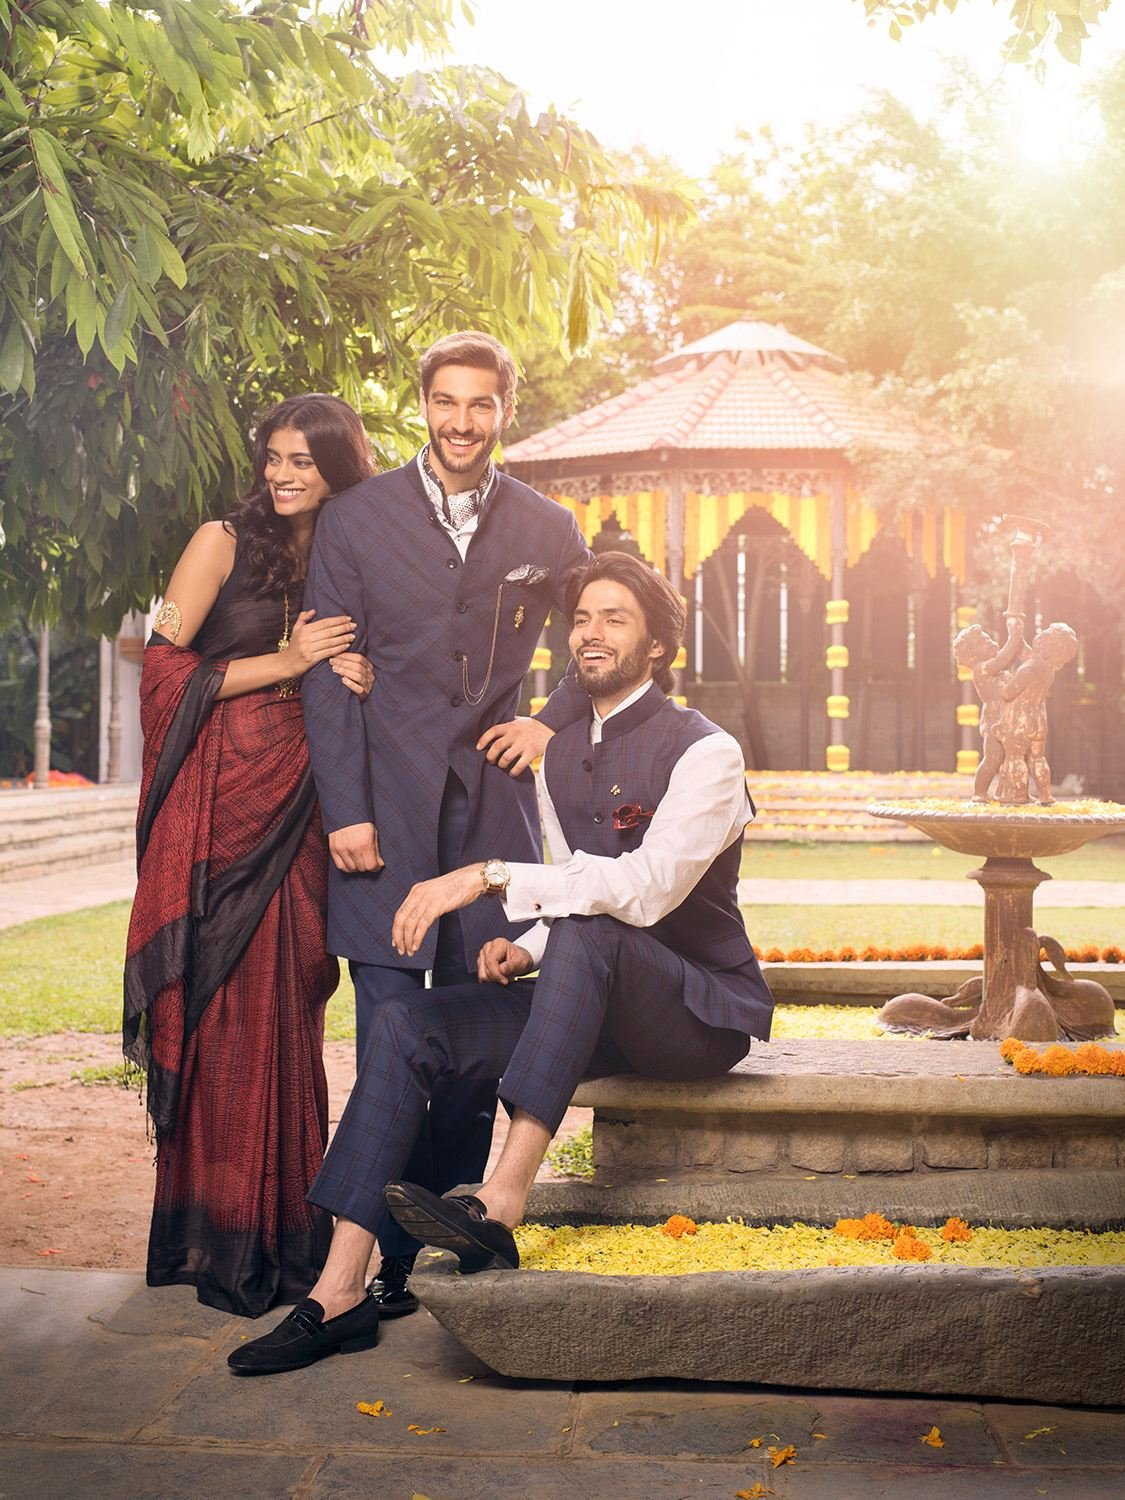 5 new ways to steal the show at any wedding event. #IndianWedding #TheArvindStore #FashionForMen #WeddingSeason #WeddingCollection #DapperIndian #BestMan #Ceremonial GQ India